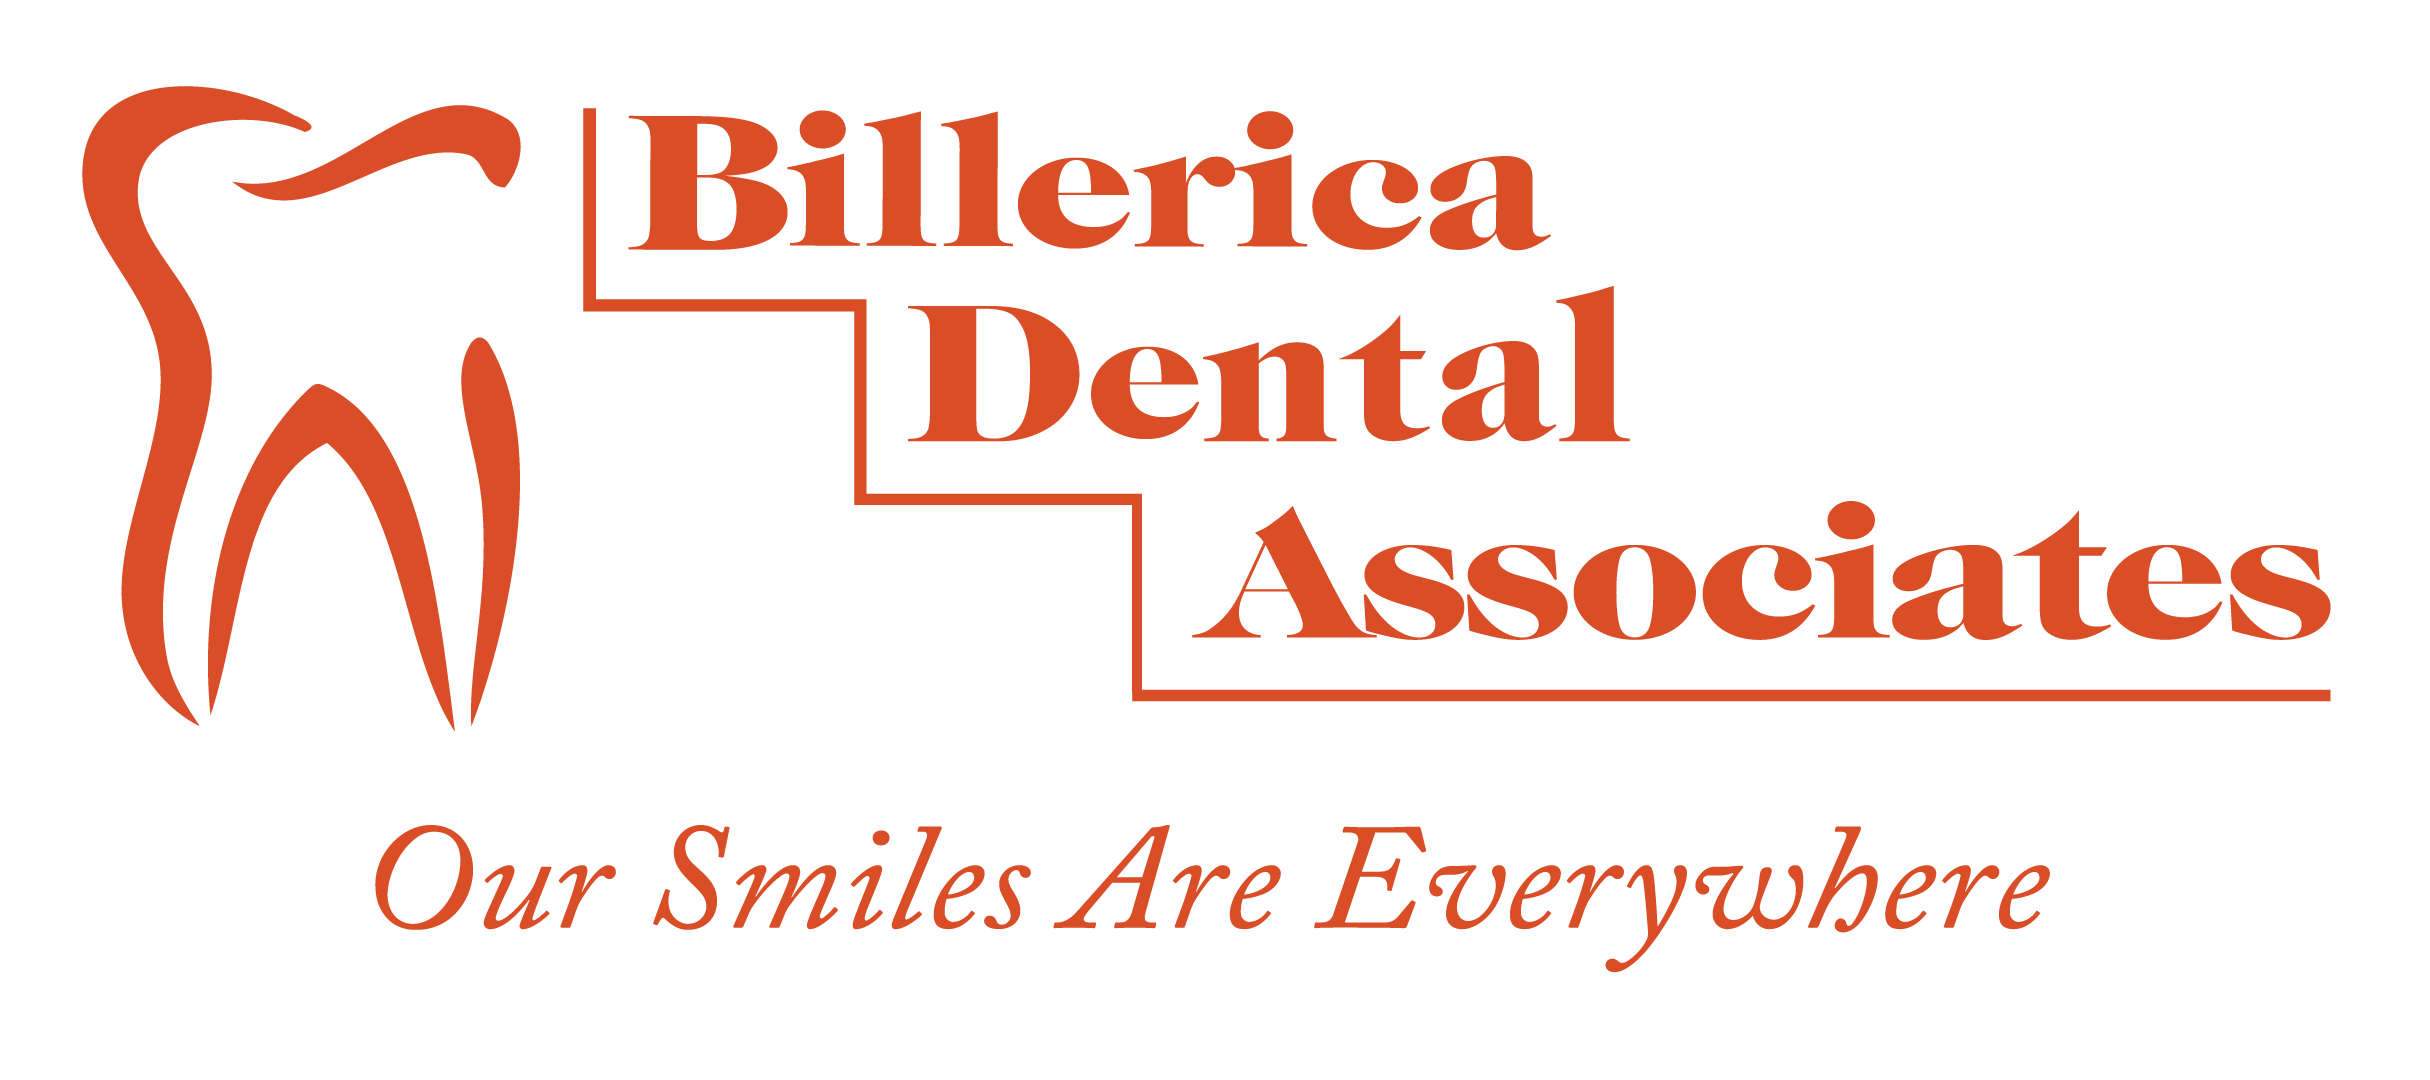 Billerica Dental Associates